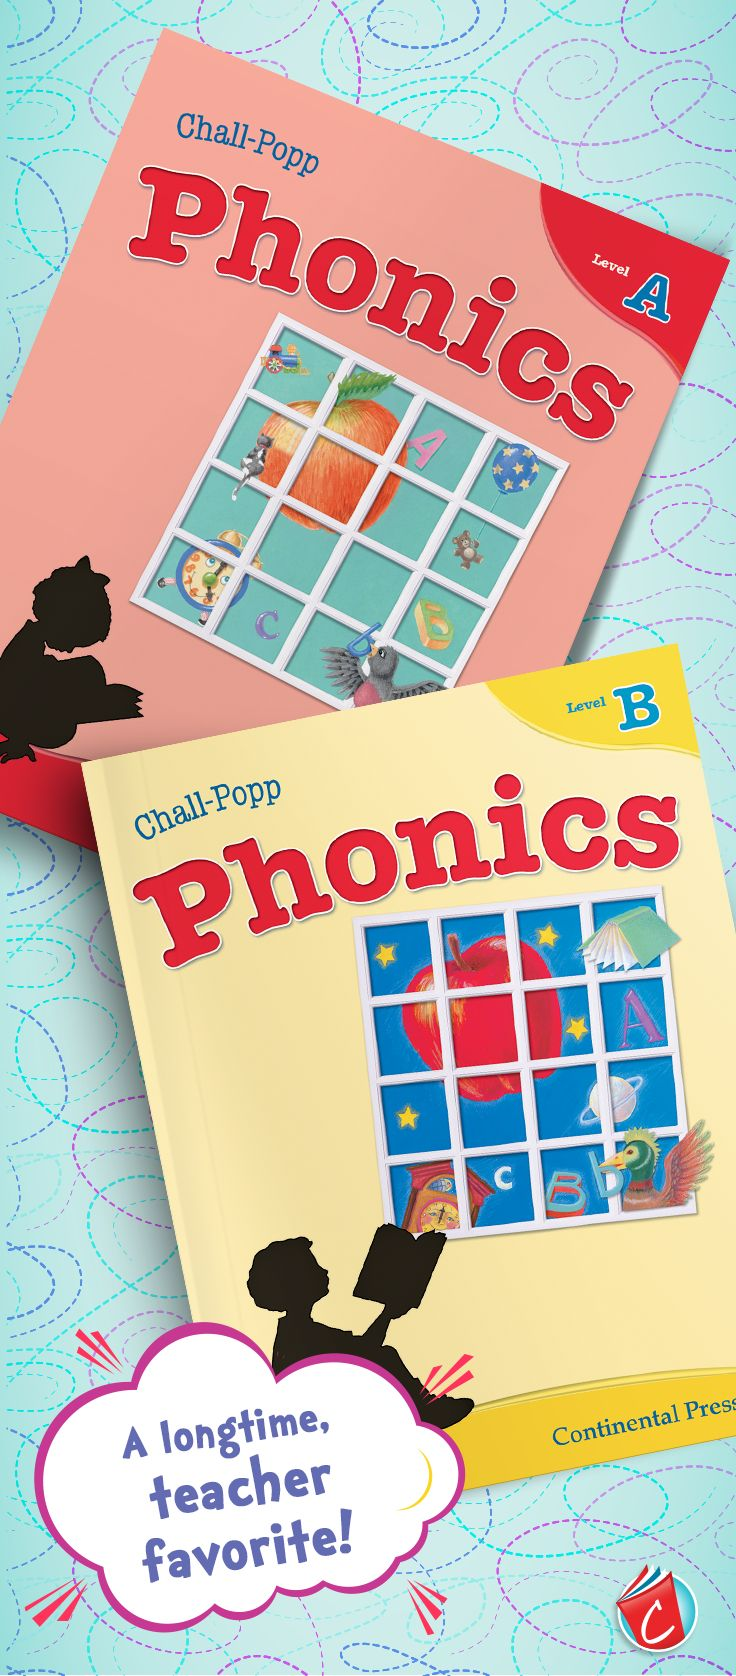 A classroom favorite for years! Chall-Popp Phonics books for grades K–3  take a systematic approach to direct phonics instruction. A student-friendly book design and a variety of stories and characters keep students engaged and ready to learn. View interior samples on our website. | Chall-Popp Phonics